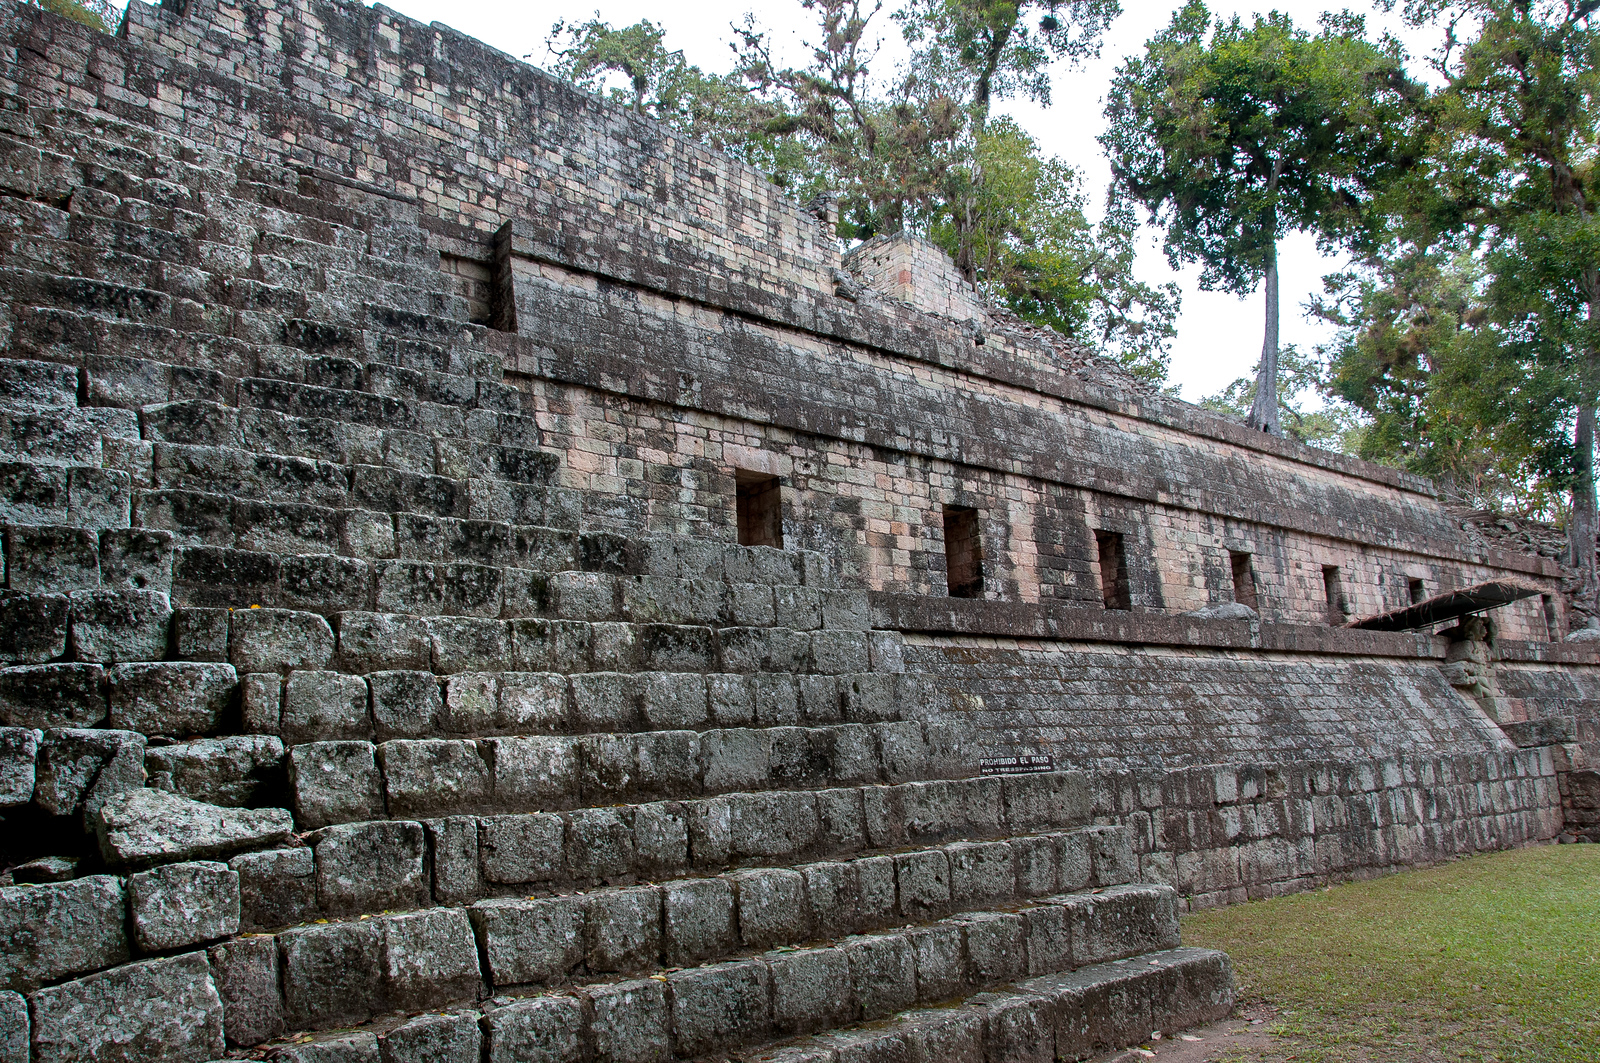 Maya Site of Copan UNESCO World Heritage Site